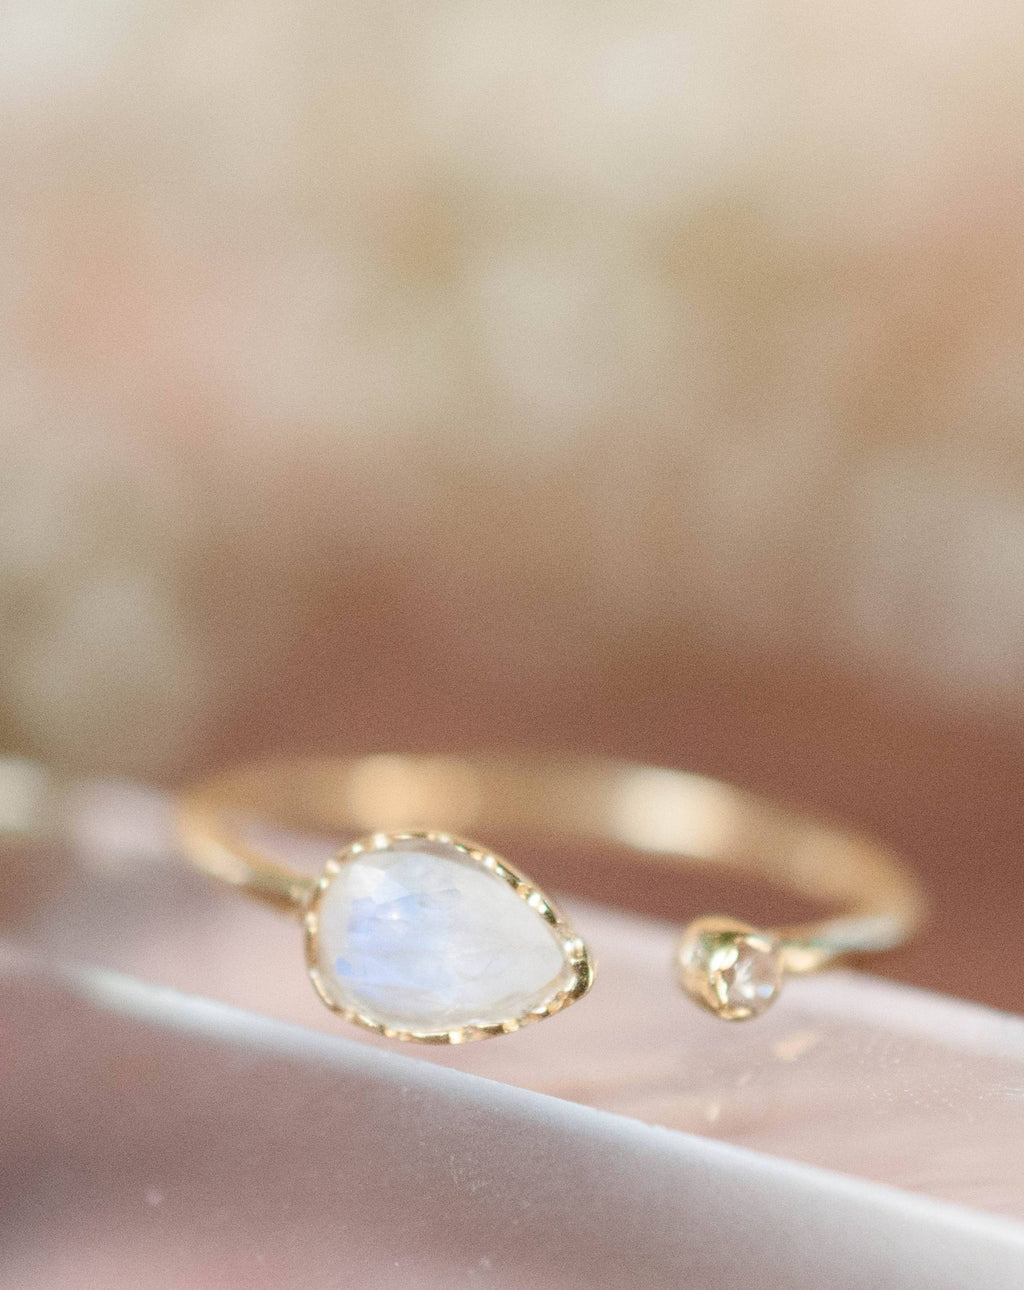 Moonstone Ring * Gold Vermeil or Sterling Silver 925* Adjustable * Statement *Gemstone* White* Handmade*Gift for Her*June Birthstone BJR036